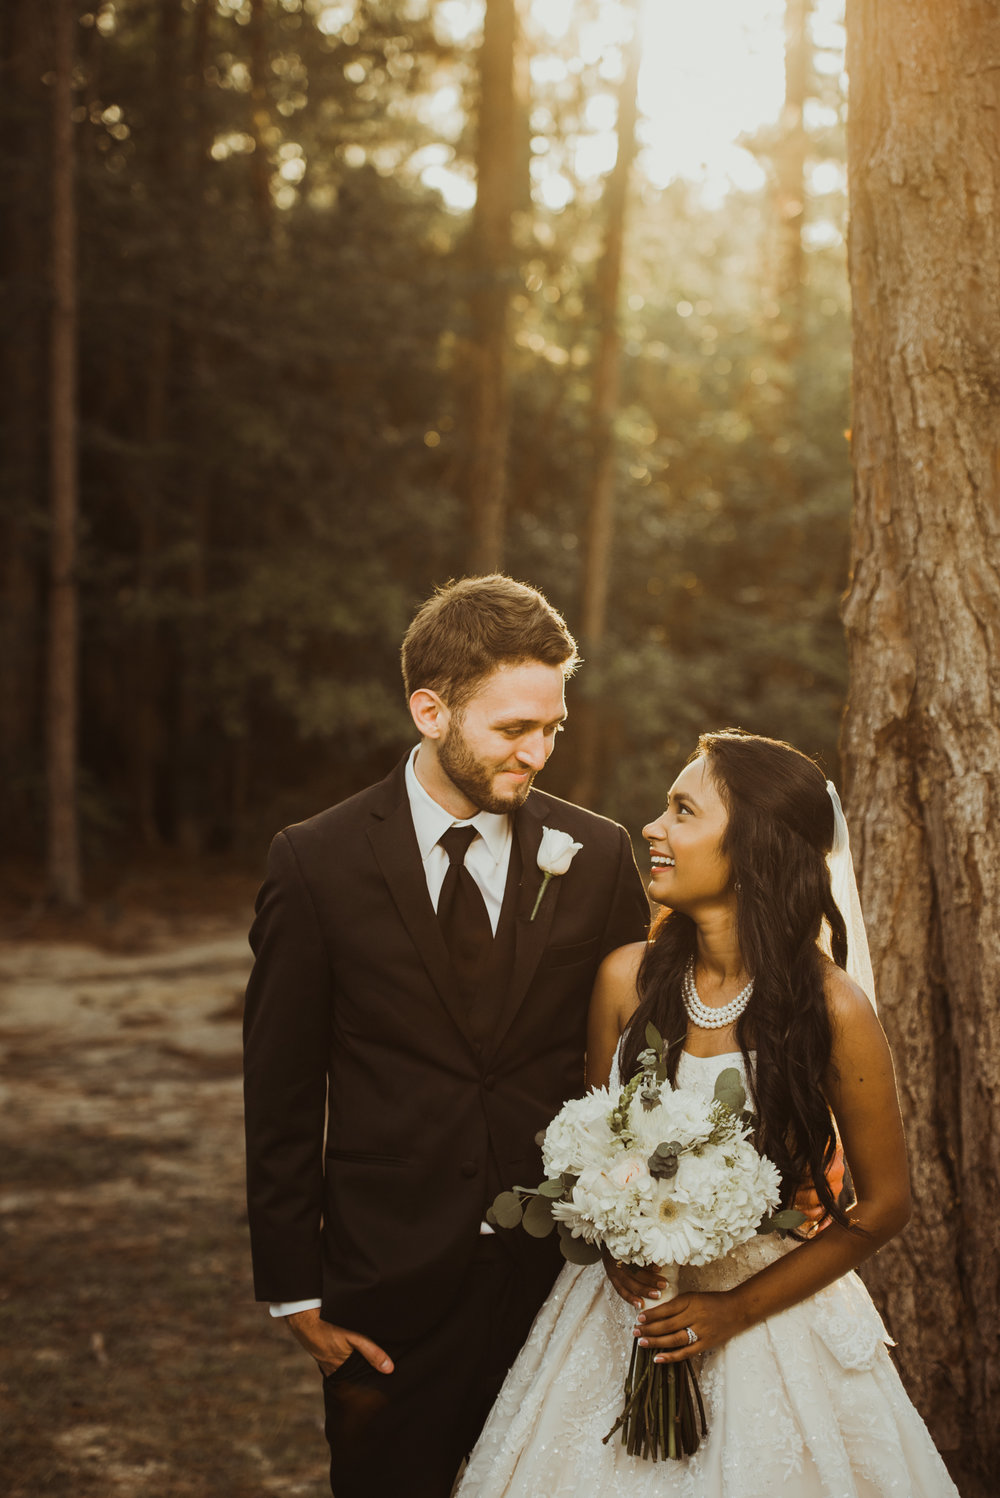 ©Isaiah & Taylor Photography - Lakeside Barn Wedding, Private Estate, Poplarville Mississippi-88.jpg